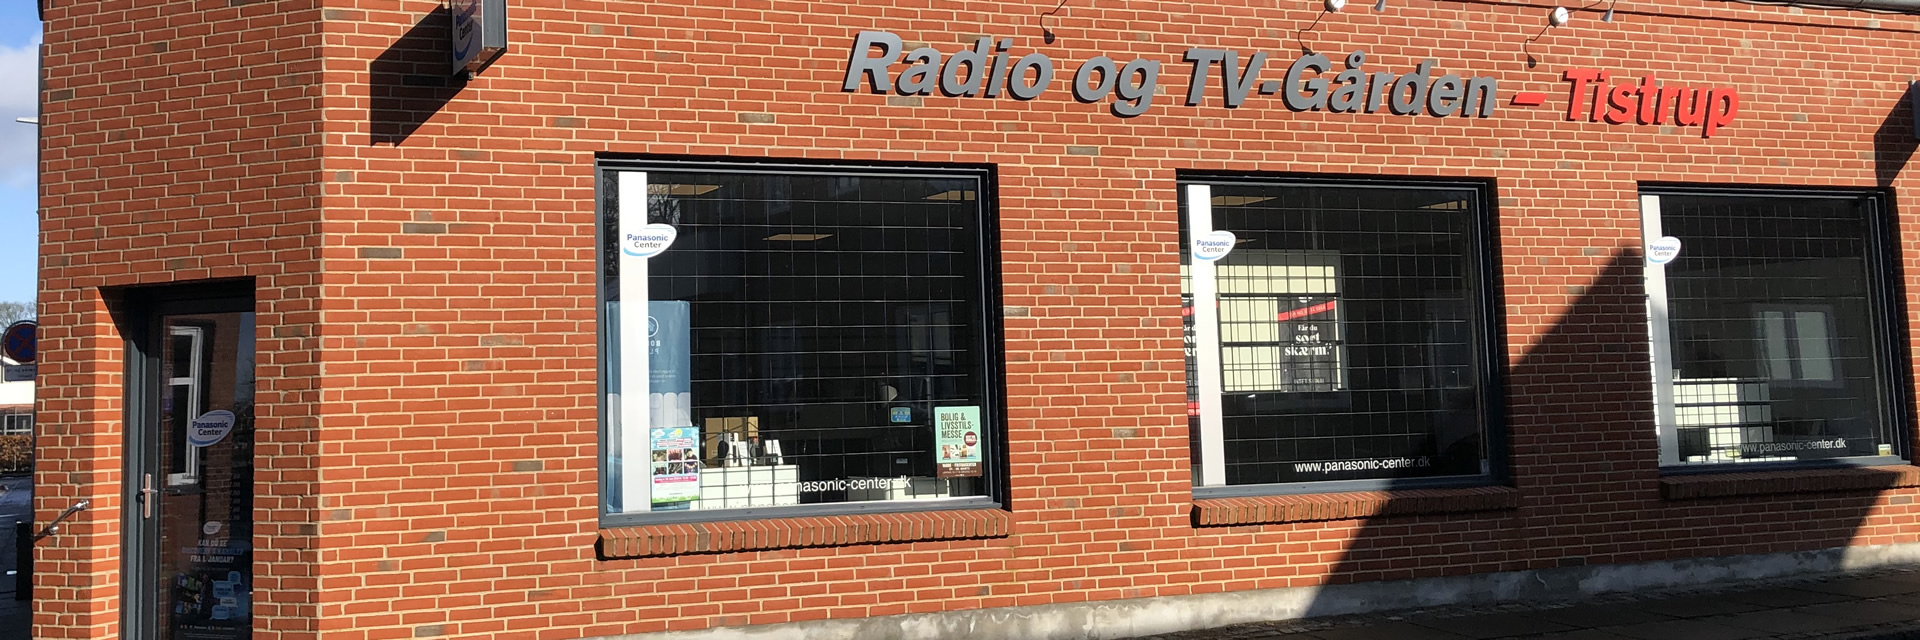 Radio og TV-Gården